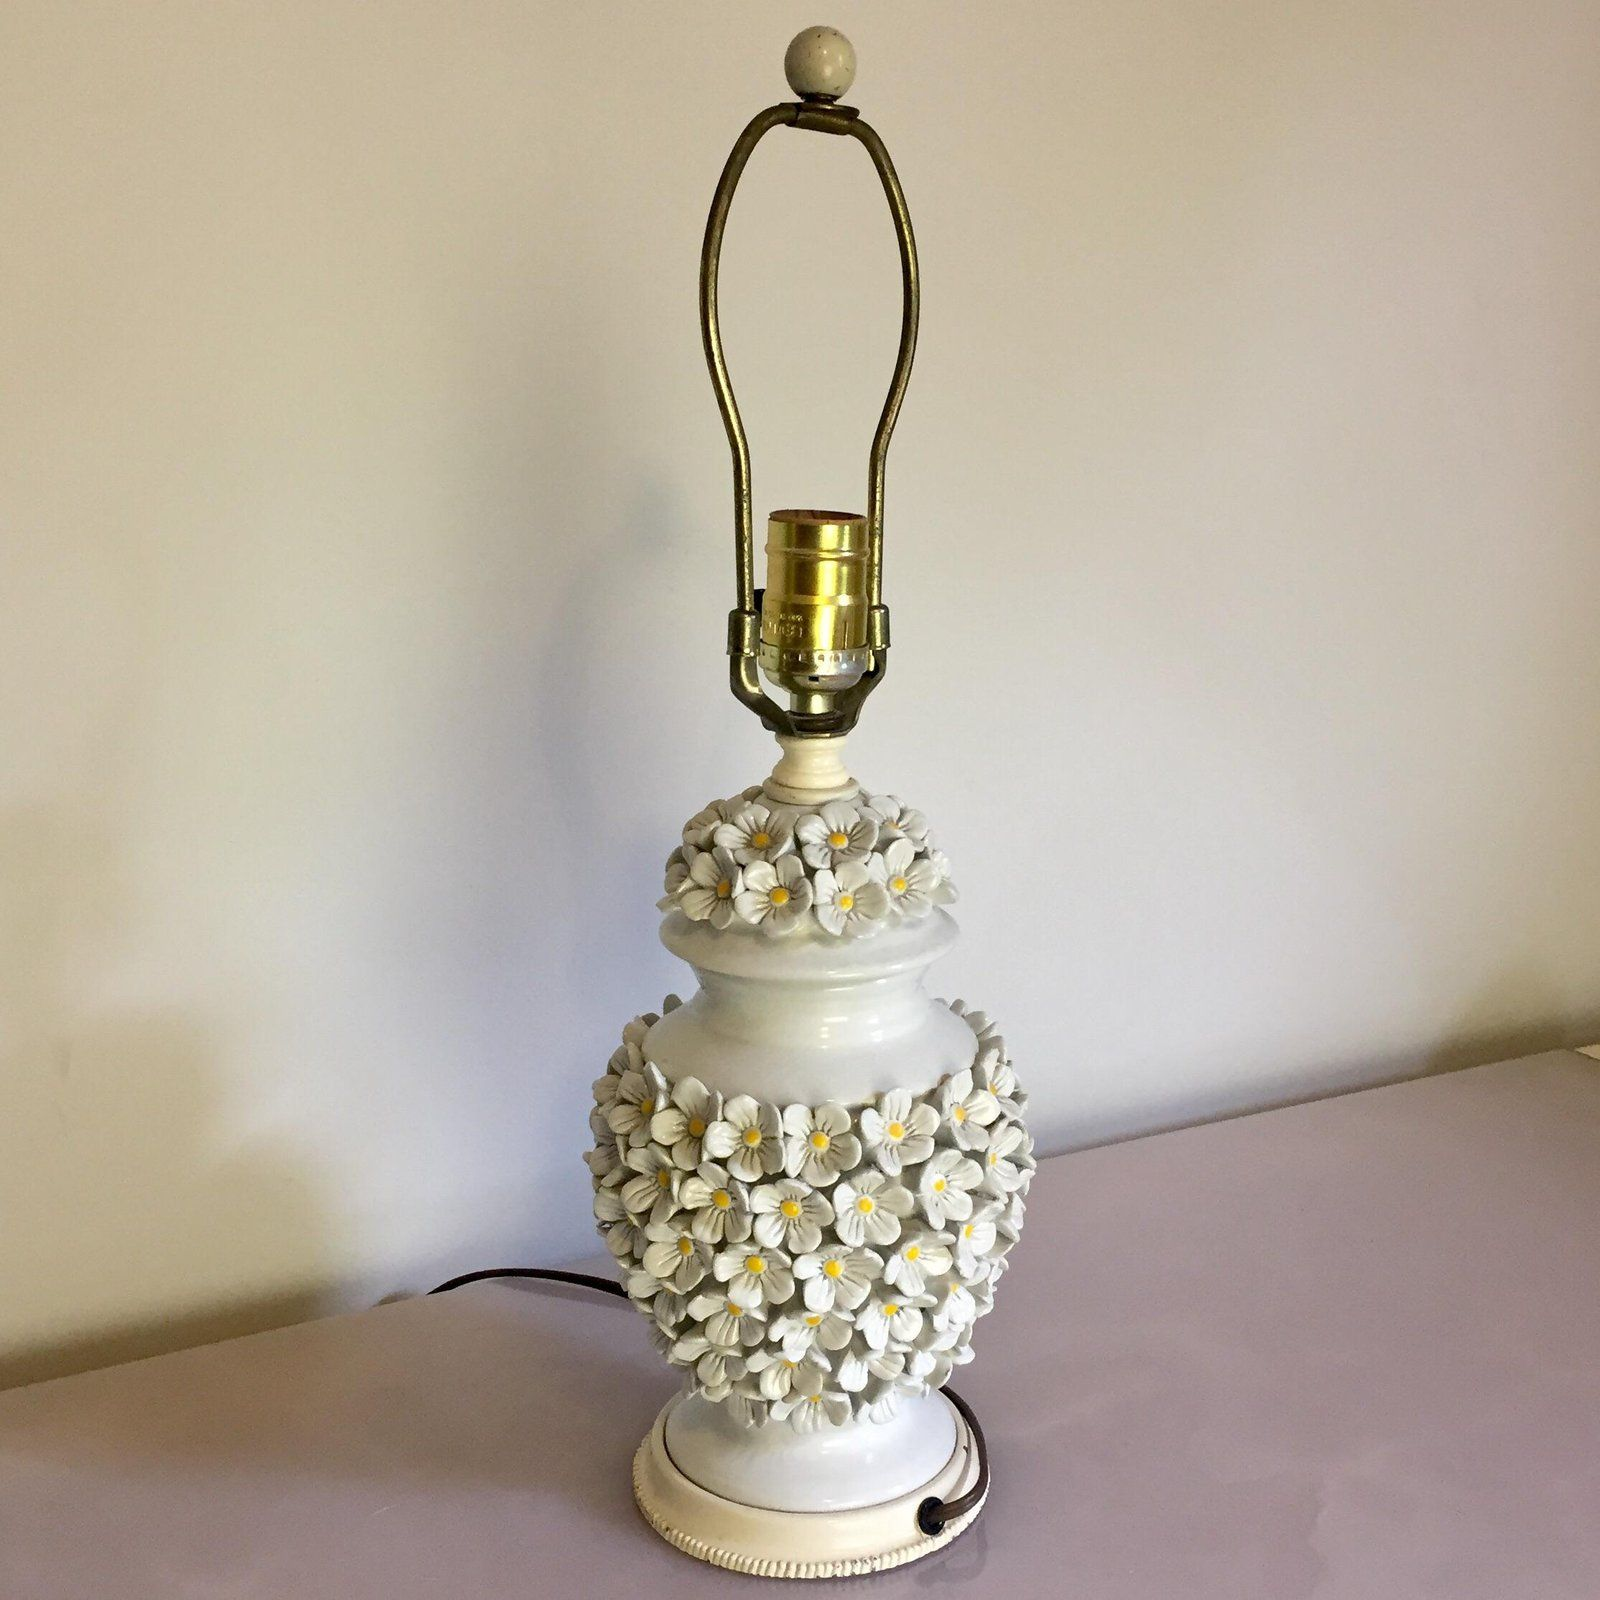 Beautiful Vintage Hand Painted 1940s Porcelain Urn Lamp In Red White And Gold Trim And Floral Design S Vintage Lamps Star Lights On Ceiling Glass Floor Lamp